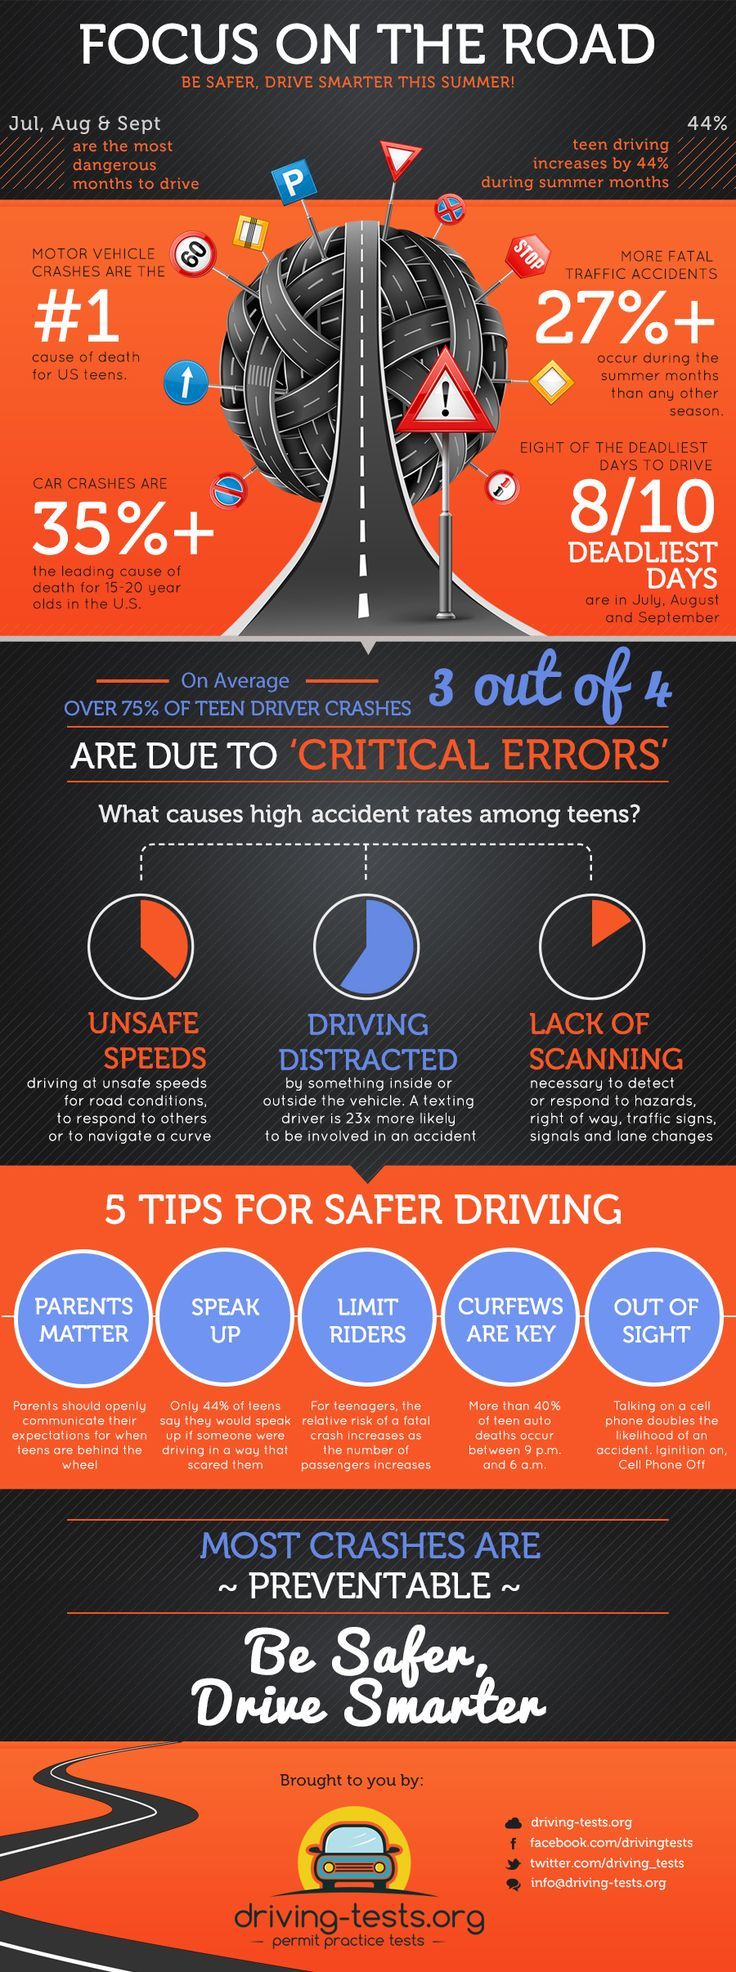 "Focus on the Road: Infographic - This infographic is presented by Driving-Tests.org, a leading online educational learning site that offers free practice permit tests for US learner drivers. This summer, Driving-Tests.org is helping to promote safer driving through the ""Focus on the Road"" campaign. Designed to help promote best driving practices for teens, this infographic encourages safer summer driving."